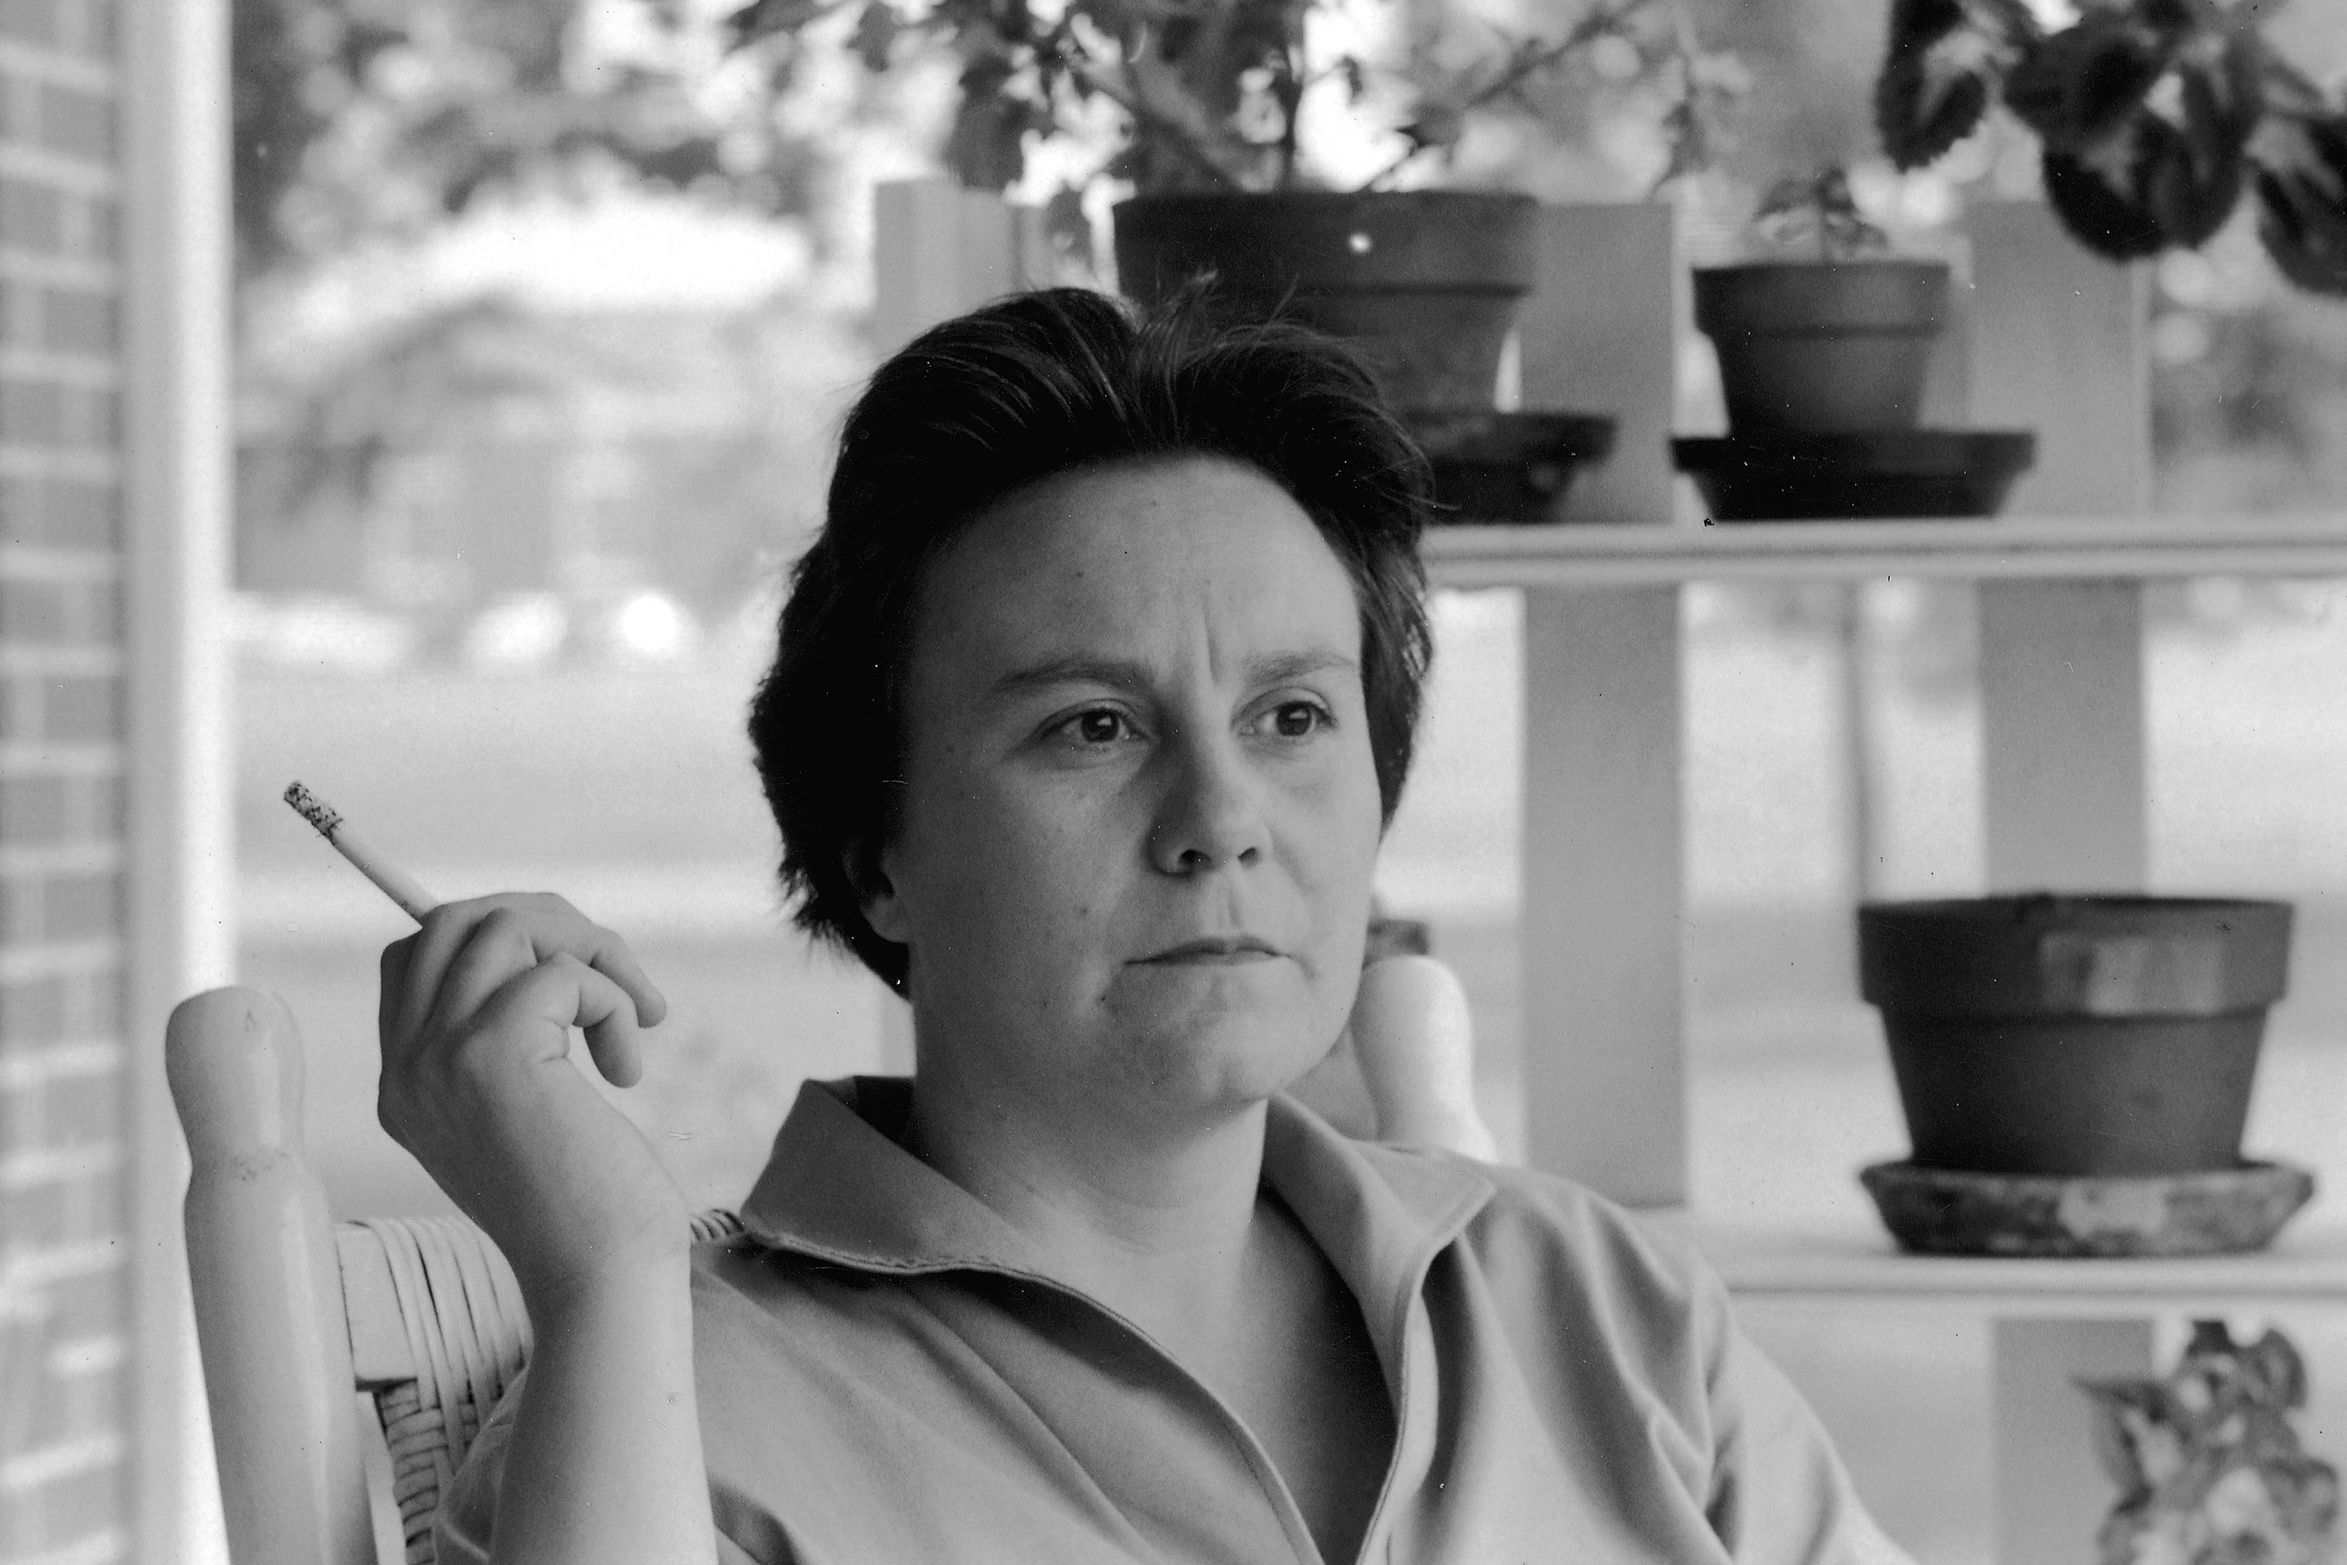 The Little-Known Story of Harper Lee's Failed Attempt to Write a True Crime Novel